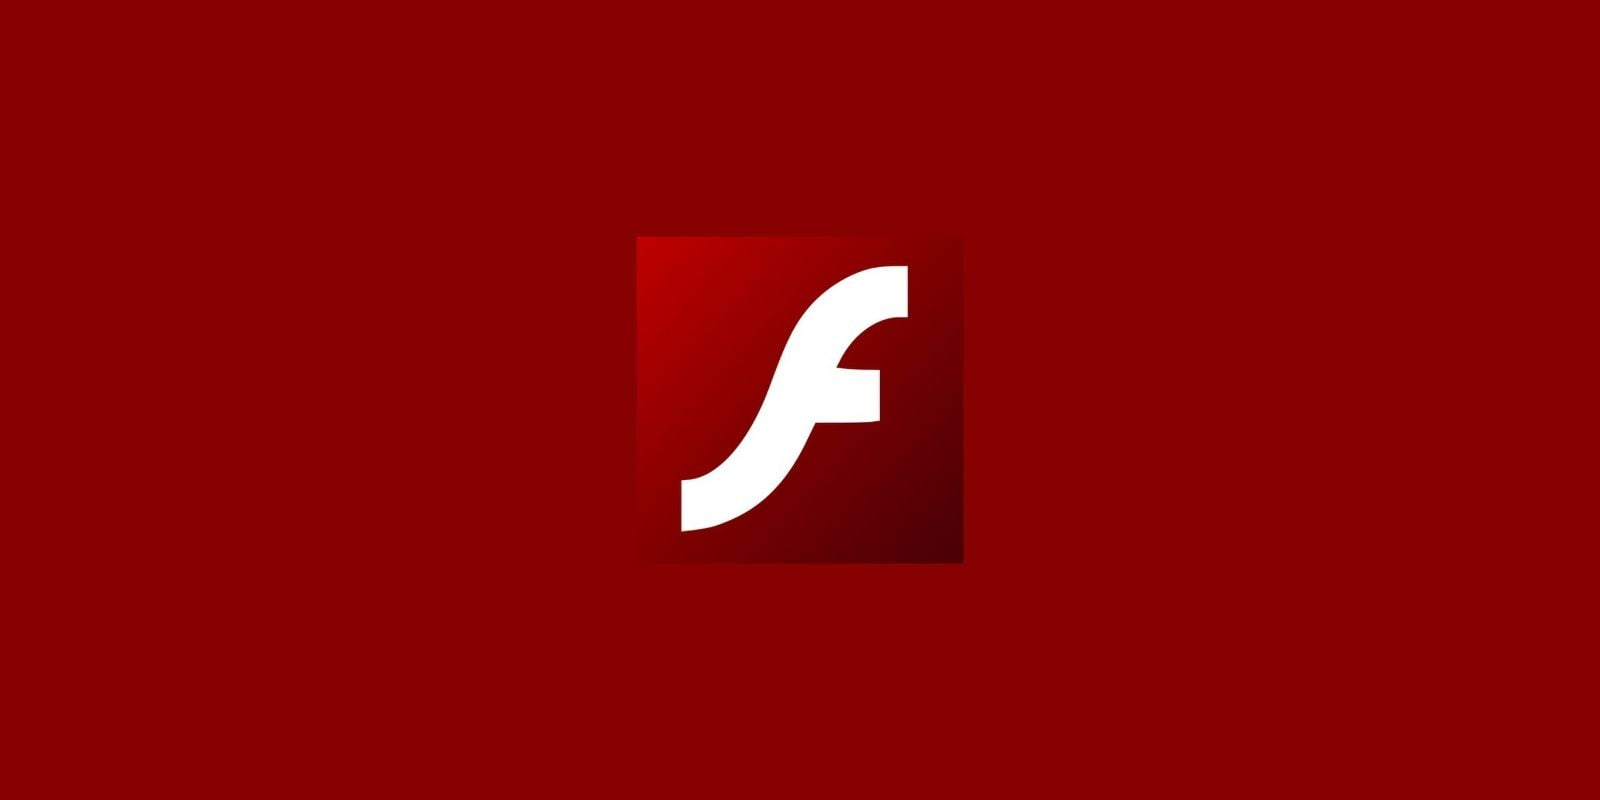 Adobe Flash Player goes EOL this December